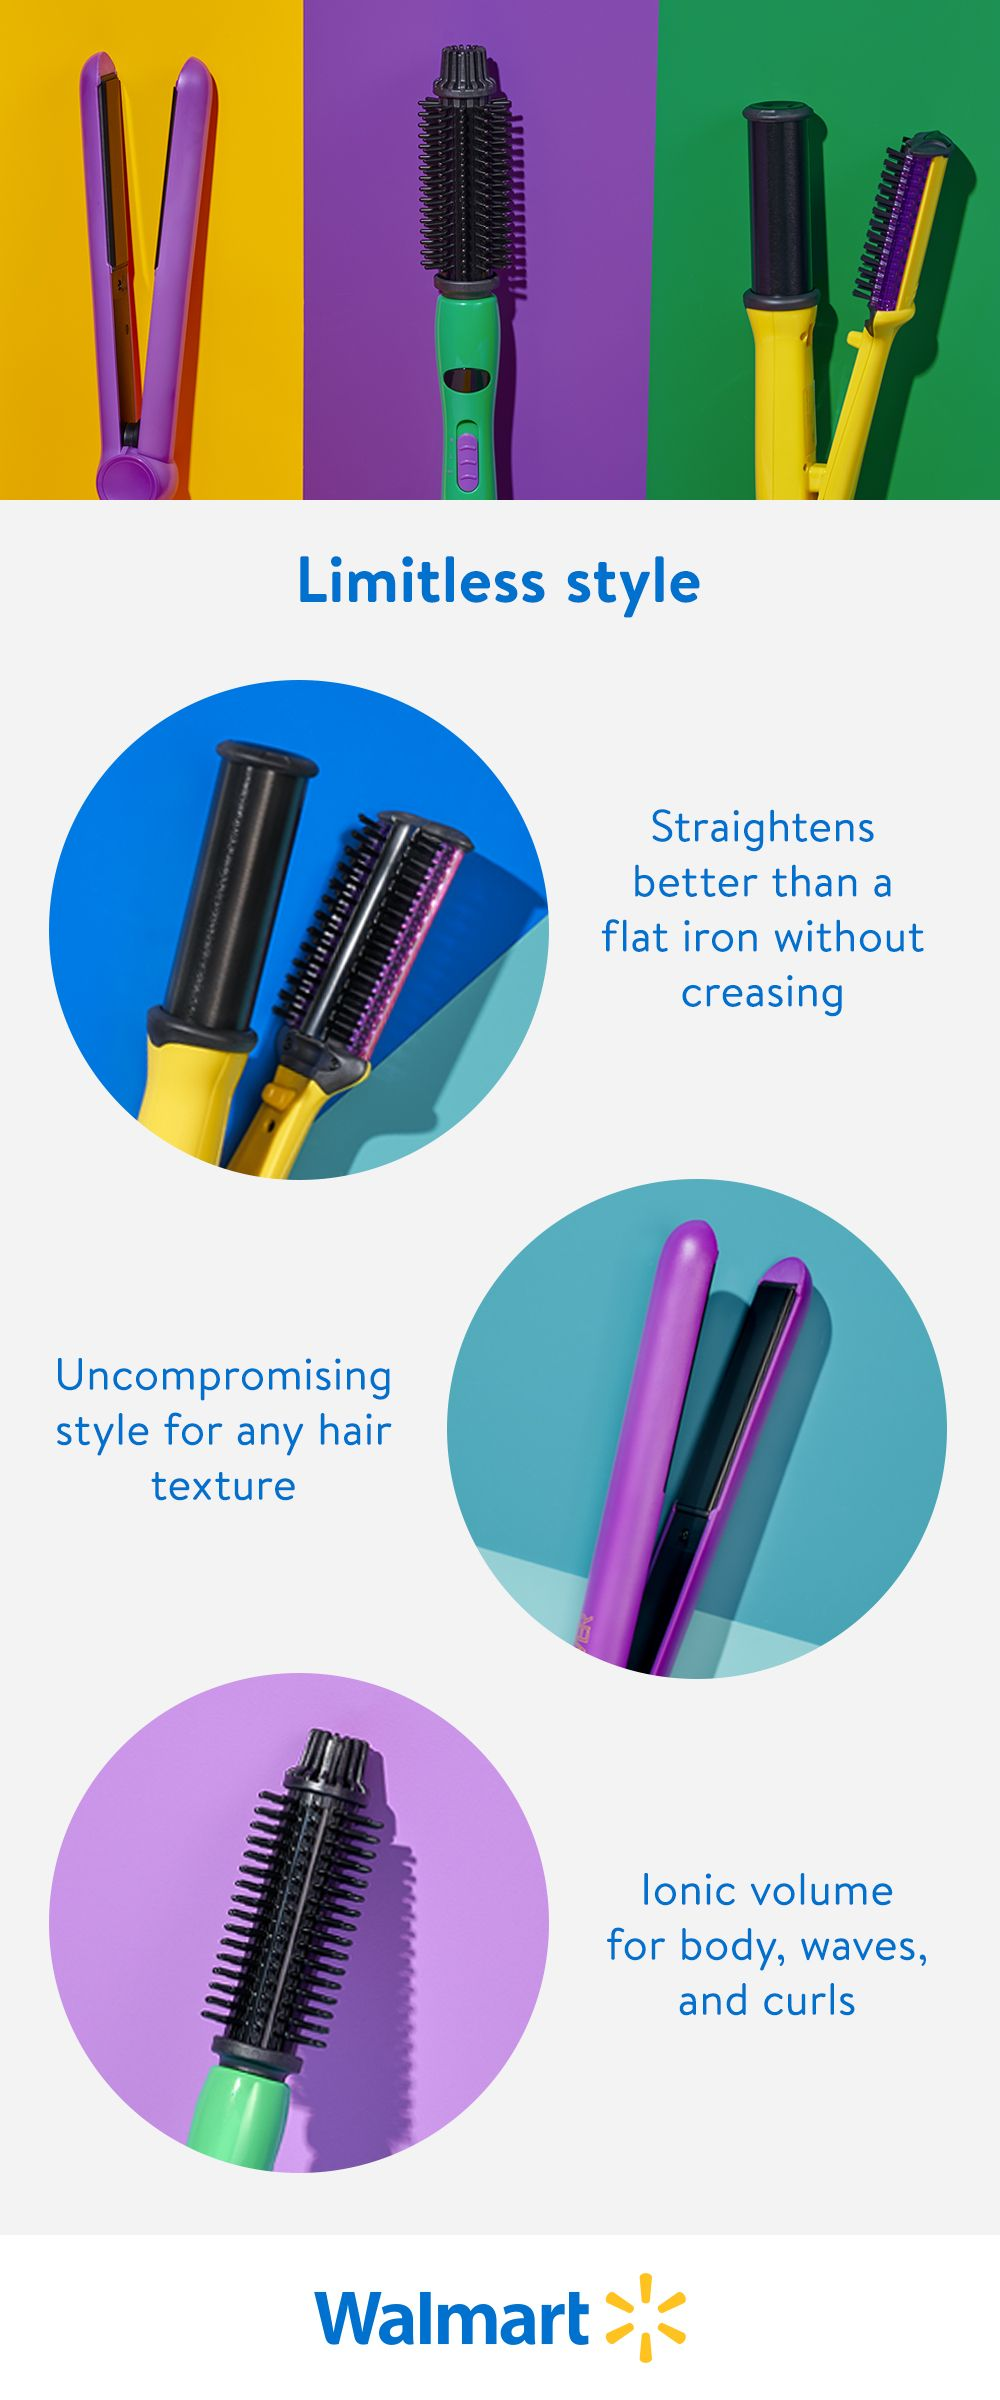 Drew Barrymore's Flower lineup of straightening and curling hair tools is launching exclusively at Walmart. Achieve the look you want effortlessly with styling options to help tame frizz and bring out your hair's body.